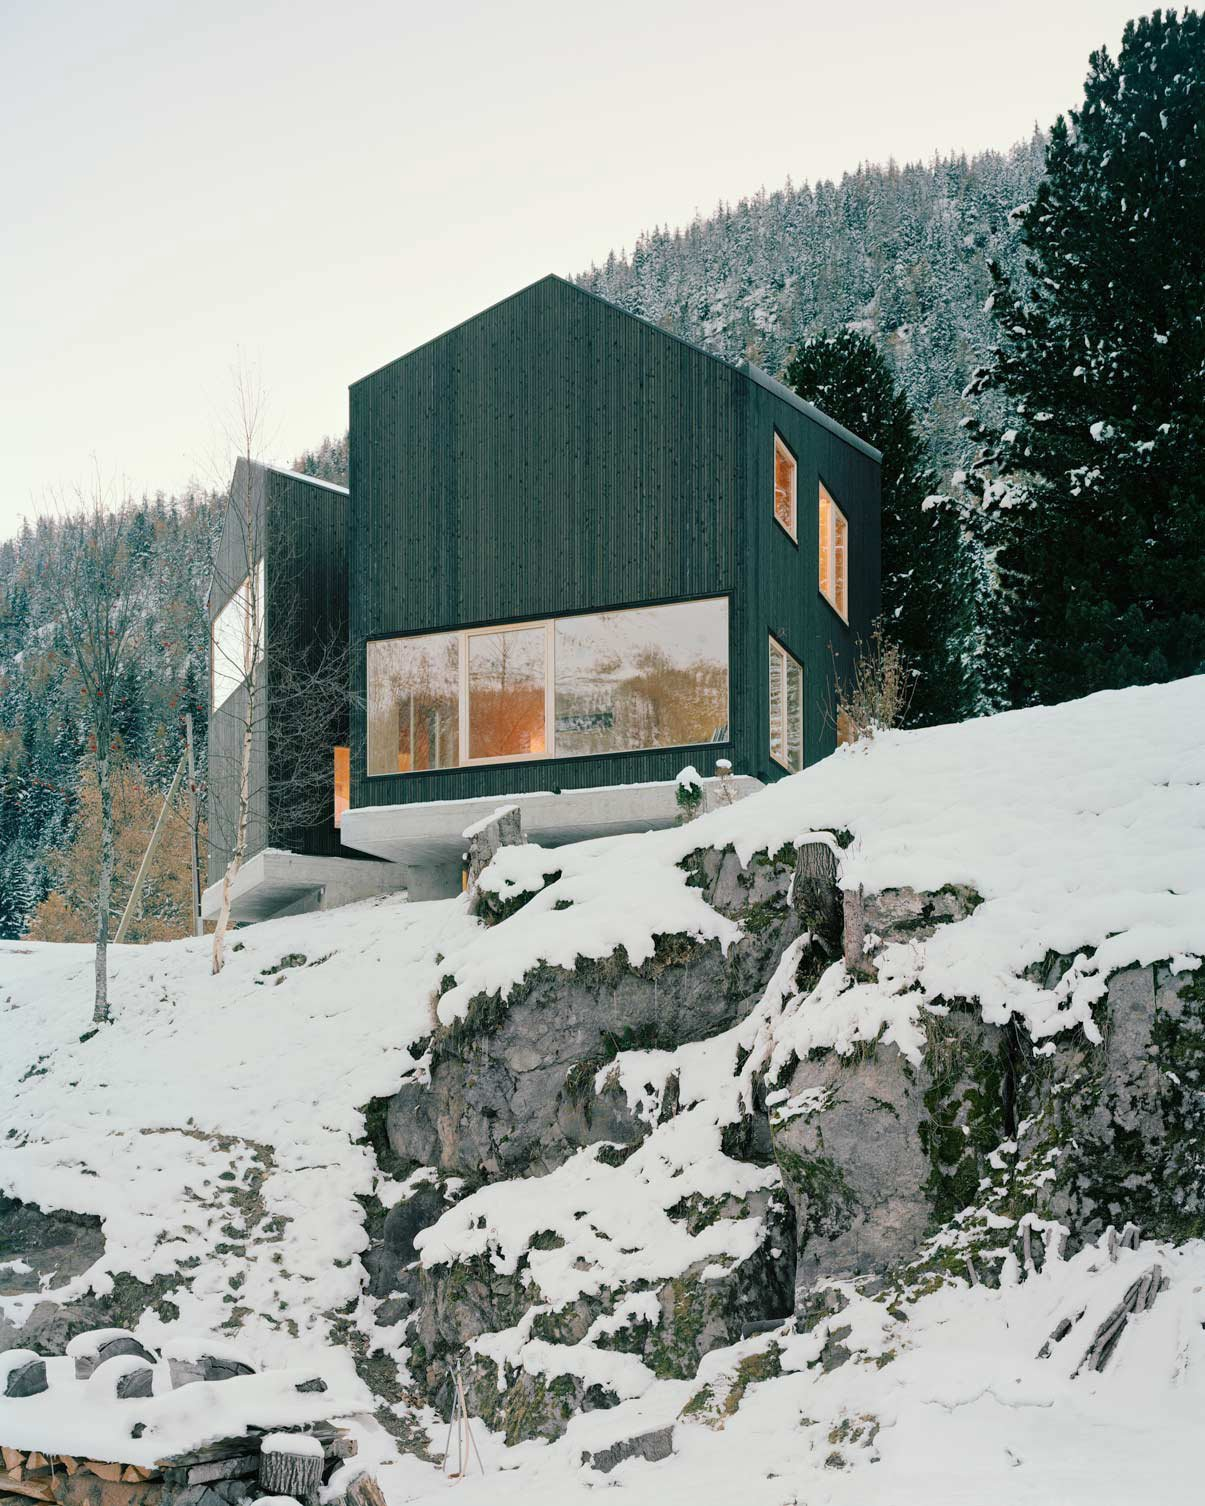 Lacroix Chessex Architectes realized La Maison aux Jeurs, a cabin in Les Jeurs, Switzerland situated on a rocky hill above the road. The structure is divided into two volumes that are angled 45 degrees apart with a connection on the mountain side. Both volumes are designed with different views of the valley below.  Photo 11 of 11 in 10 Modern Wintry Cabins We'd Be Happy to Hole Up In